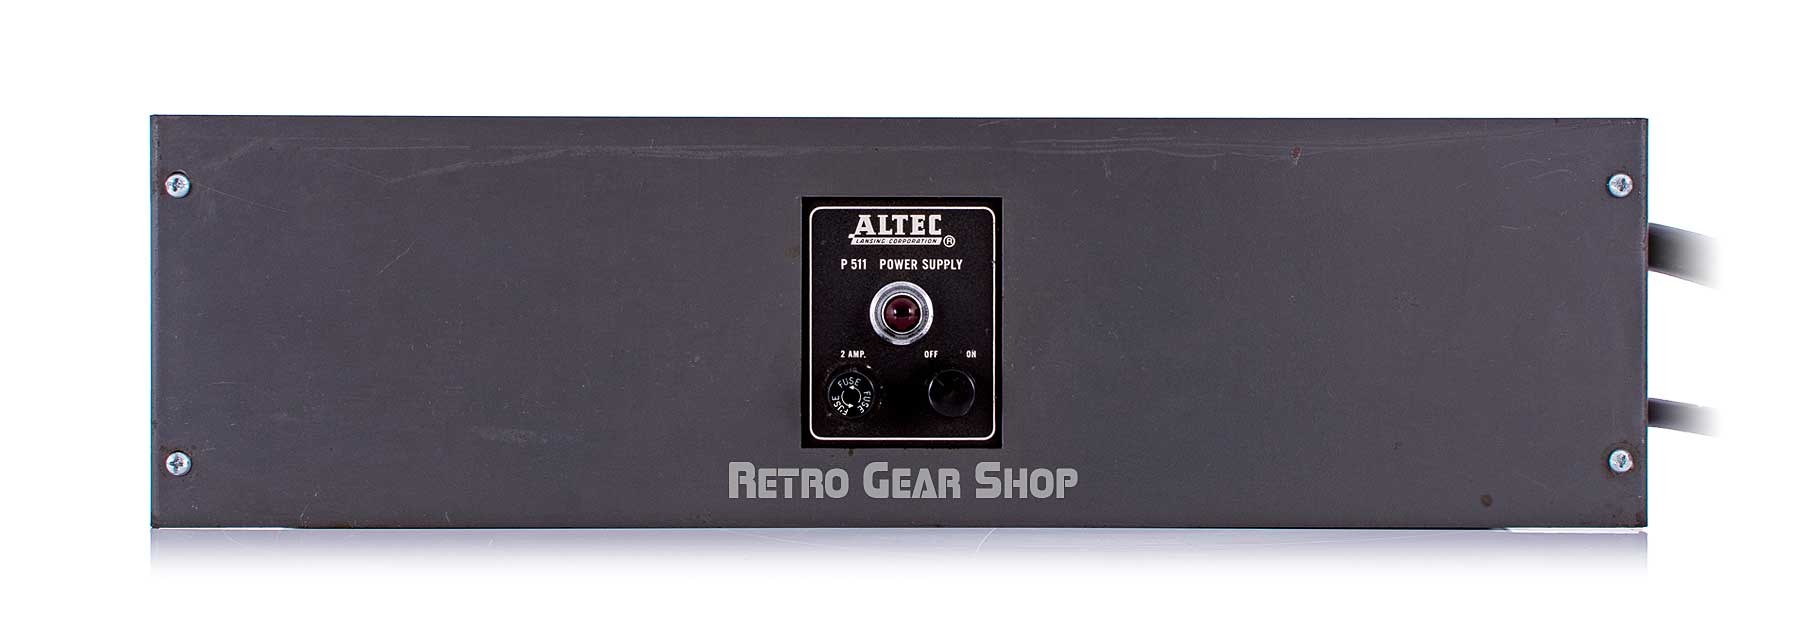 Altec 322C Grey P511 Power Supply Front